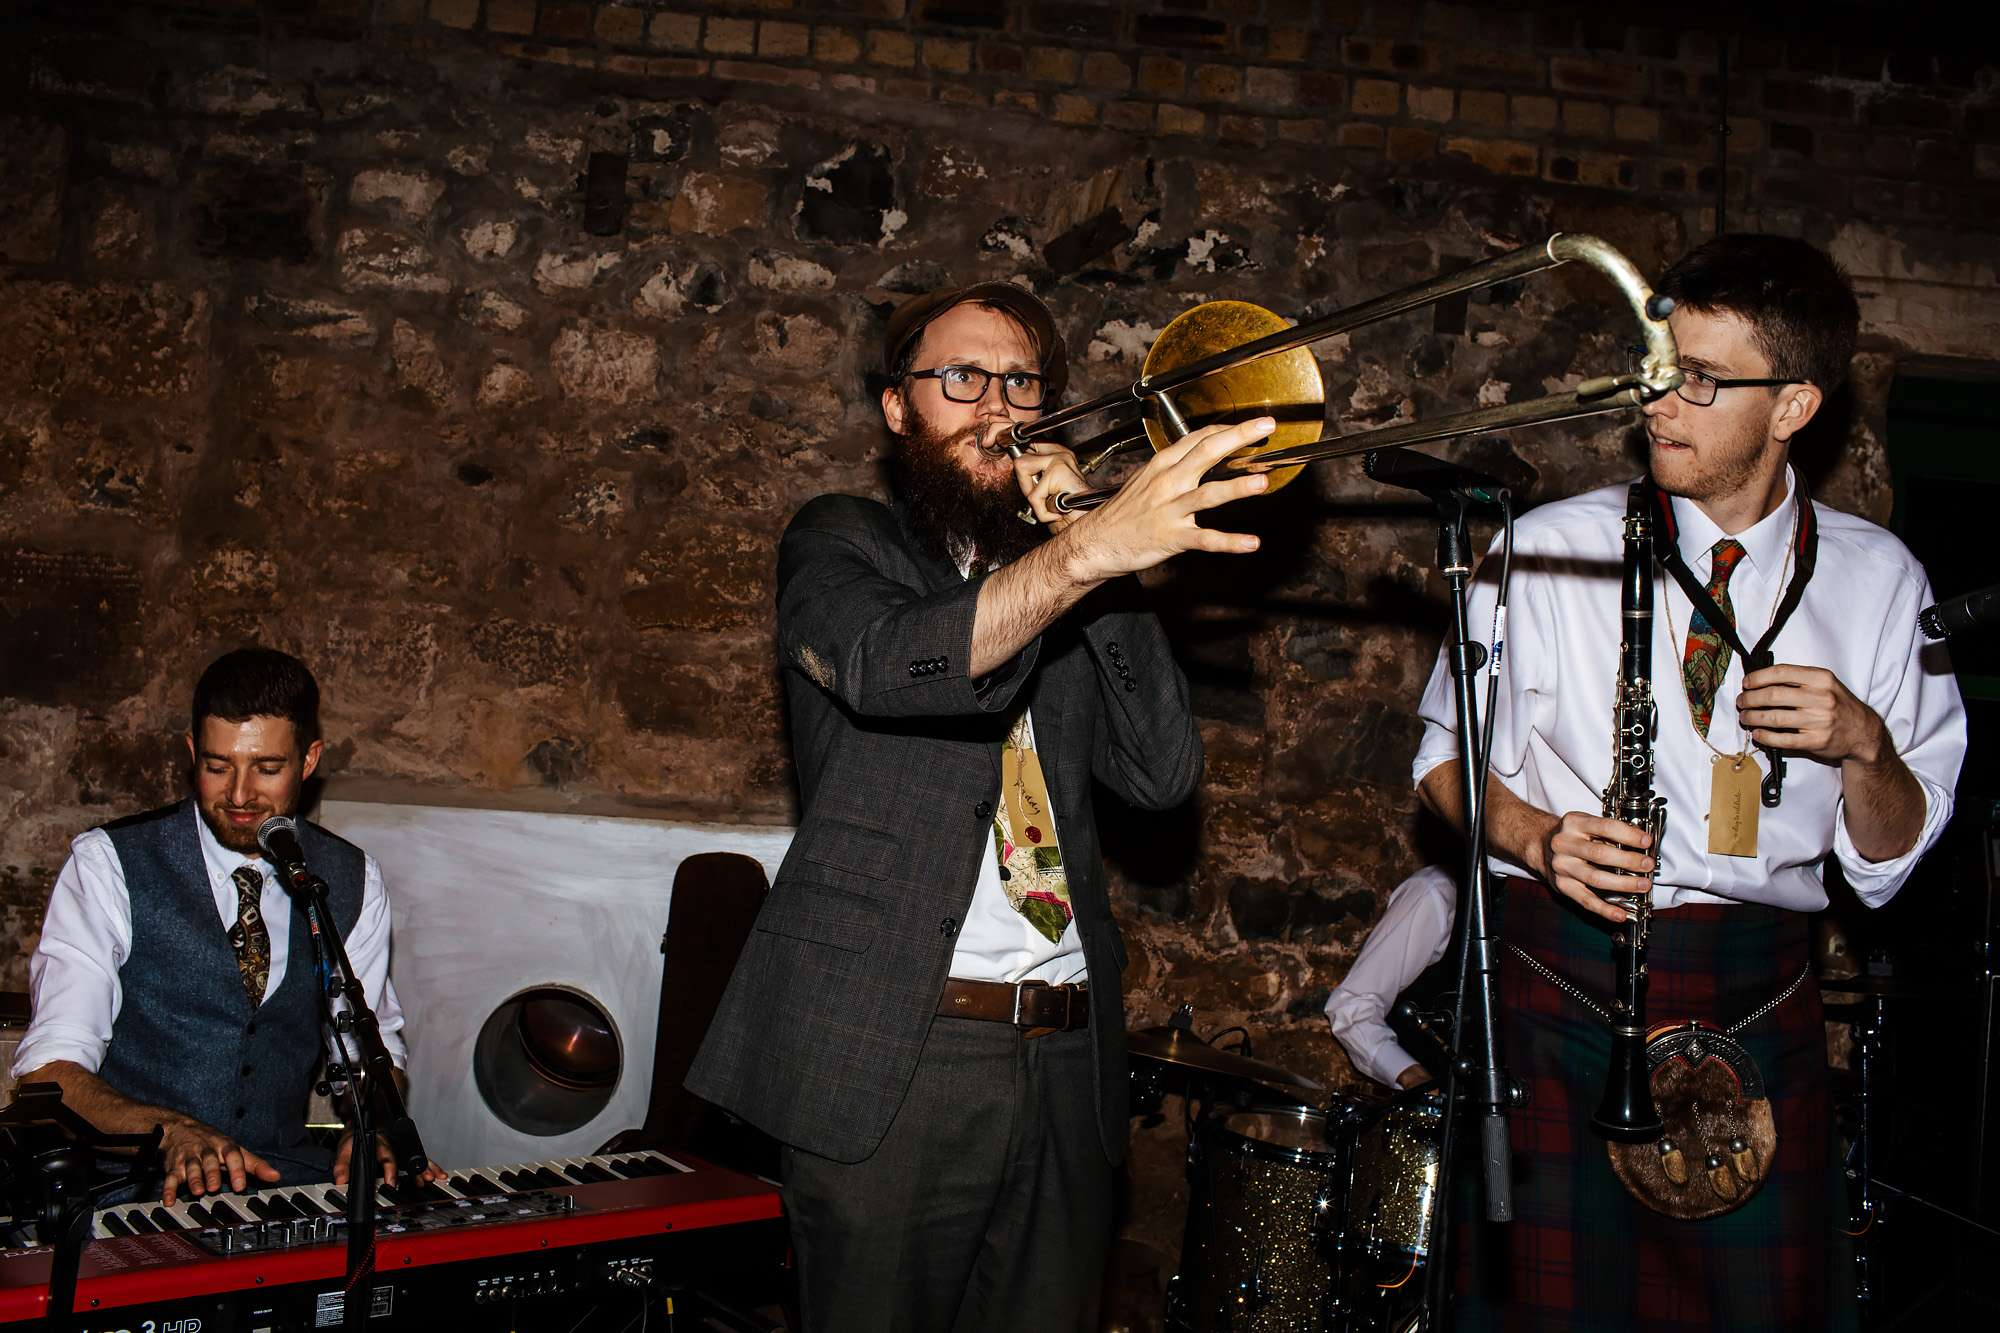 Trombonist performing at a Fife wedding